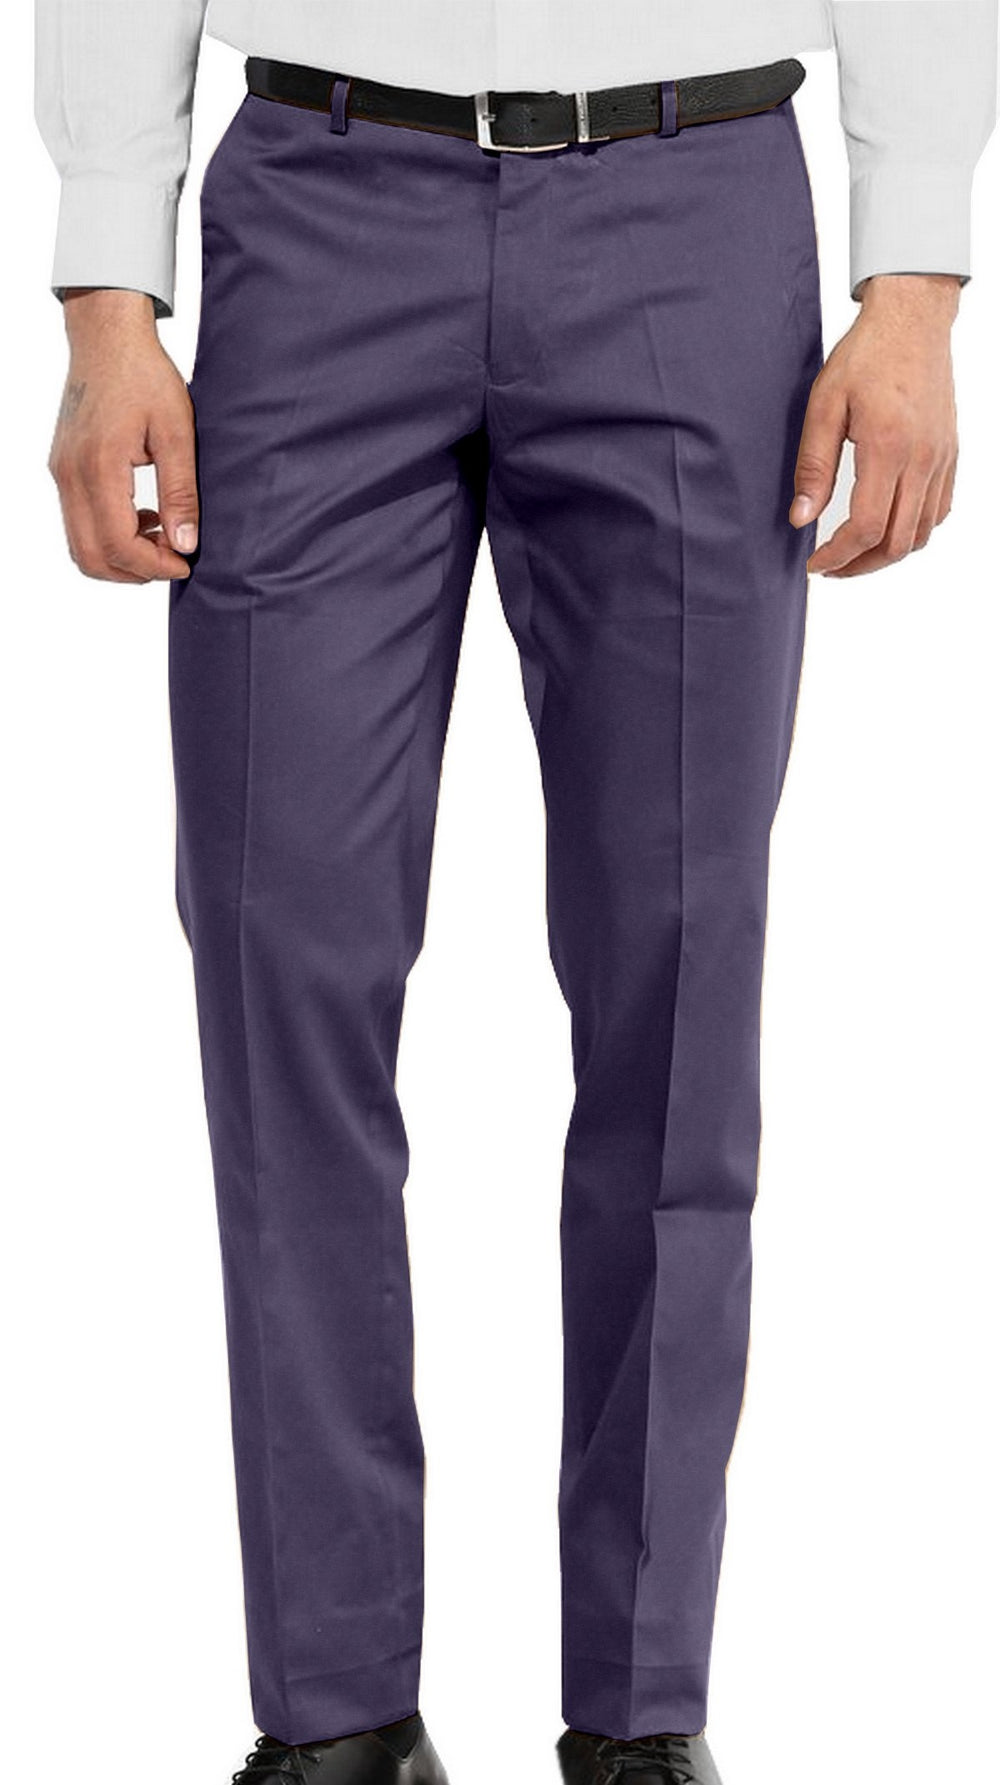 Purple Blue Twill chino